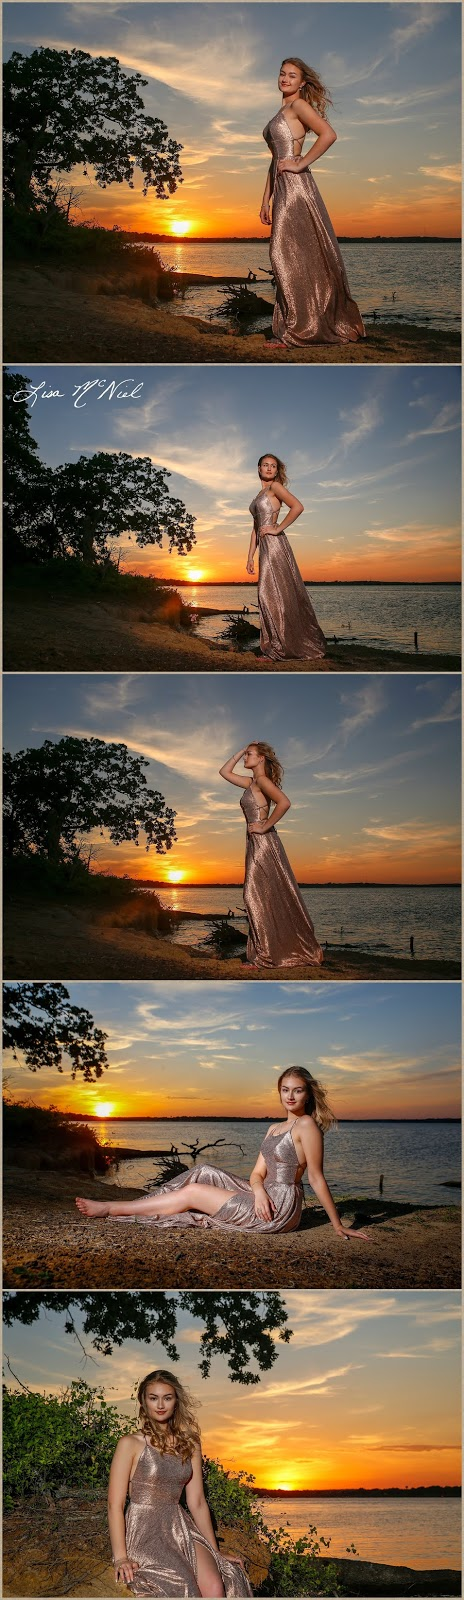 pretty blond girl in prom dress by lake at sunset